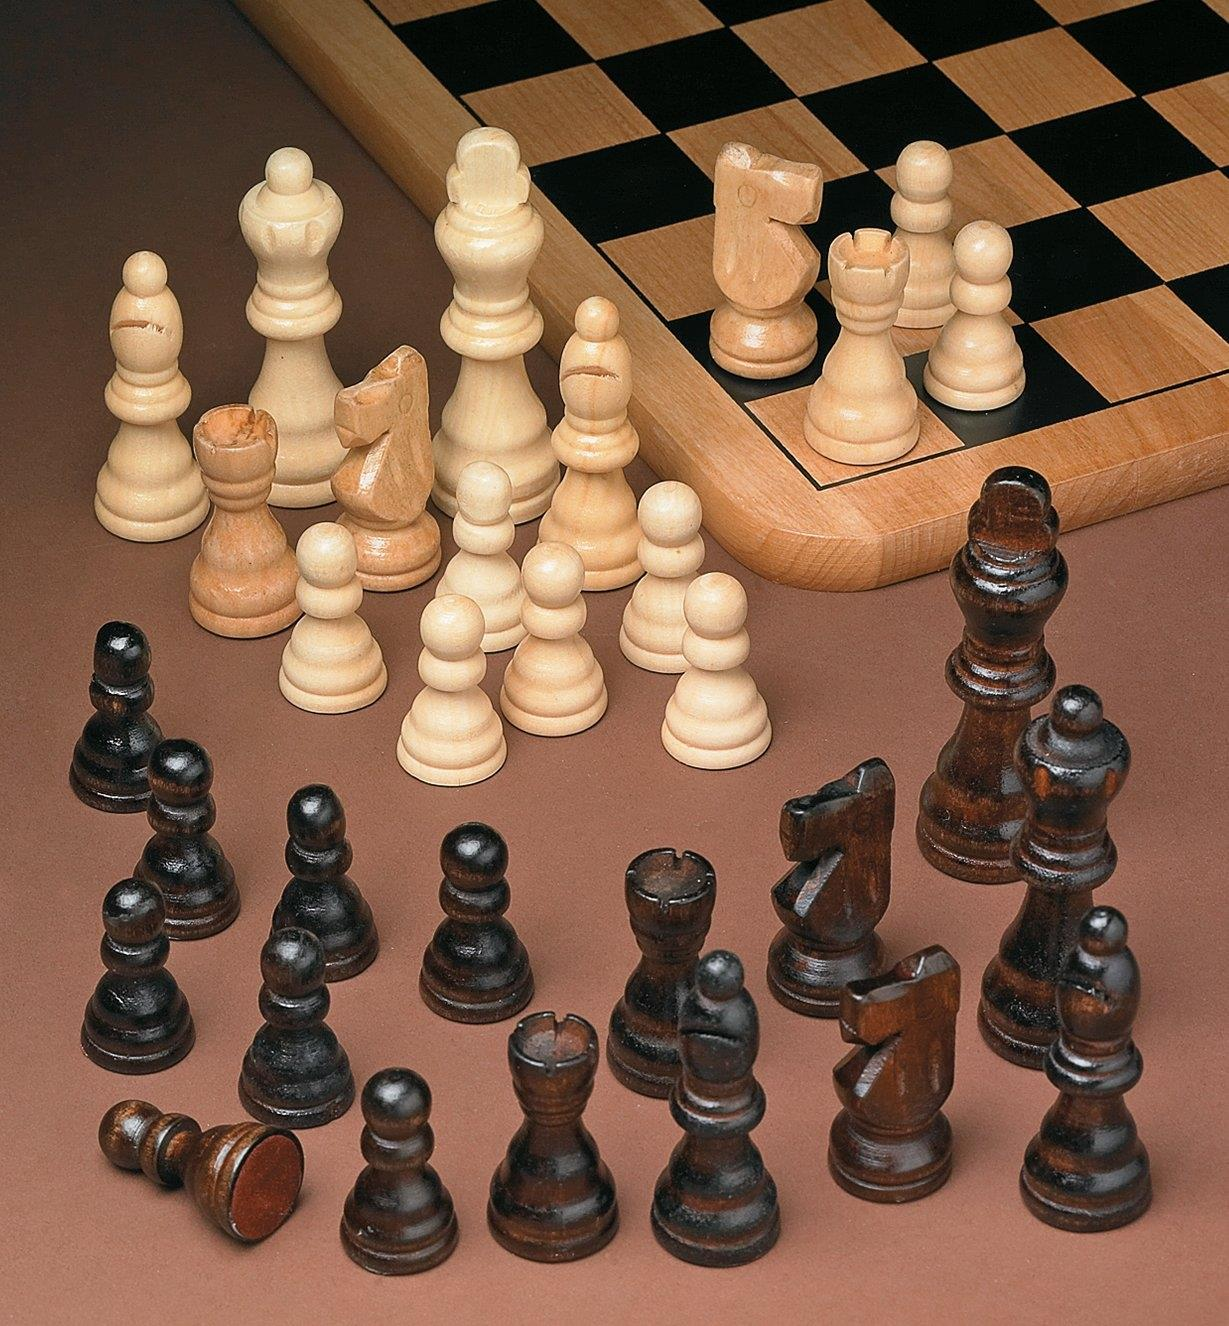 Wooden Chess Pieces arranged next to a chess board